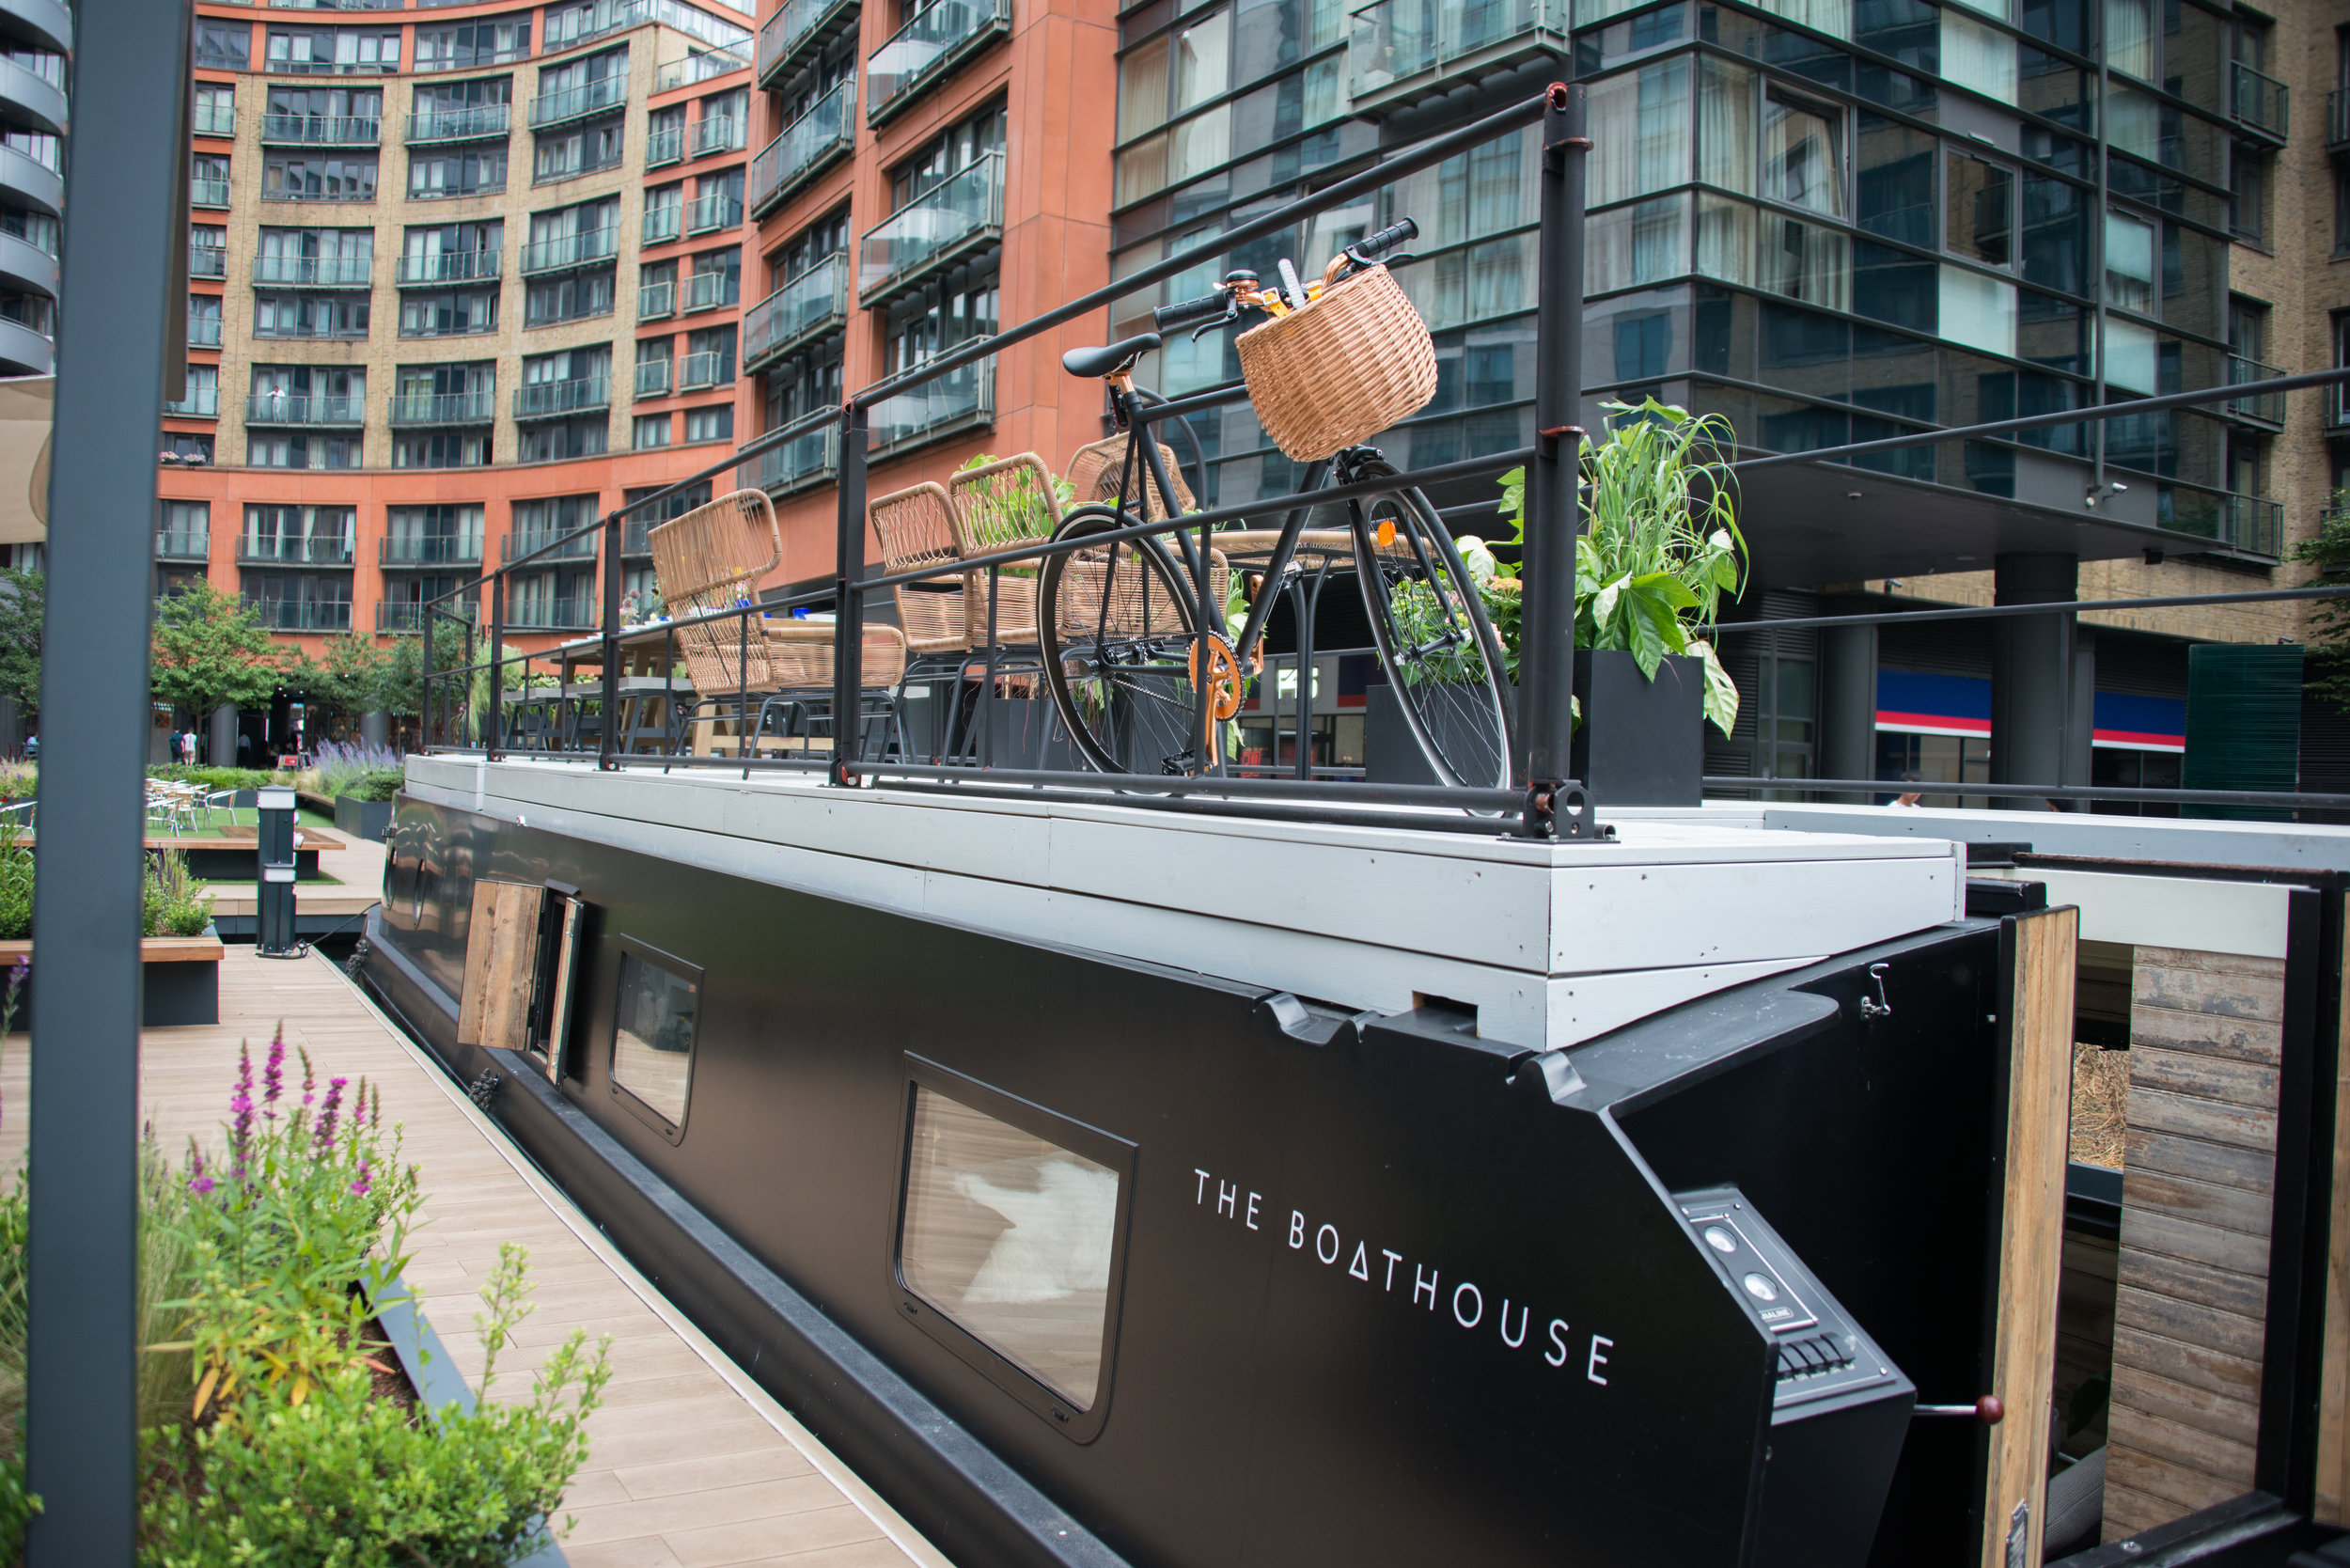 The Boathouse London